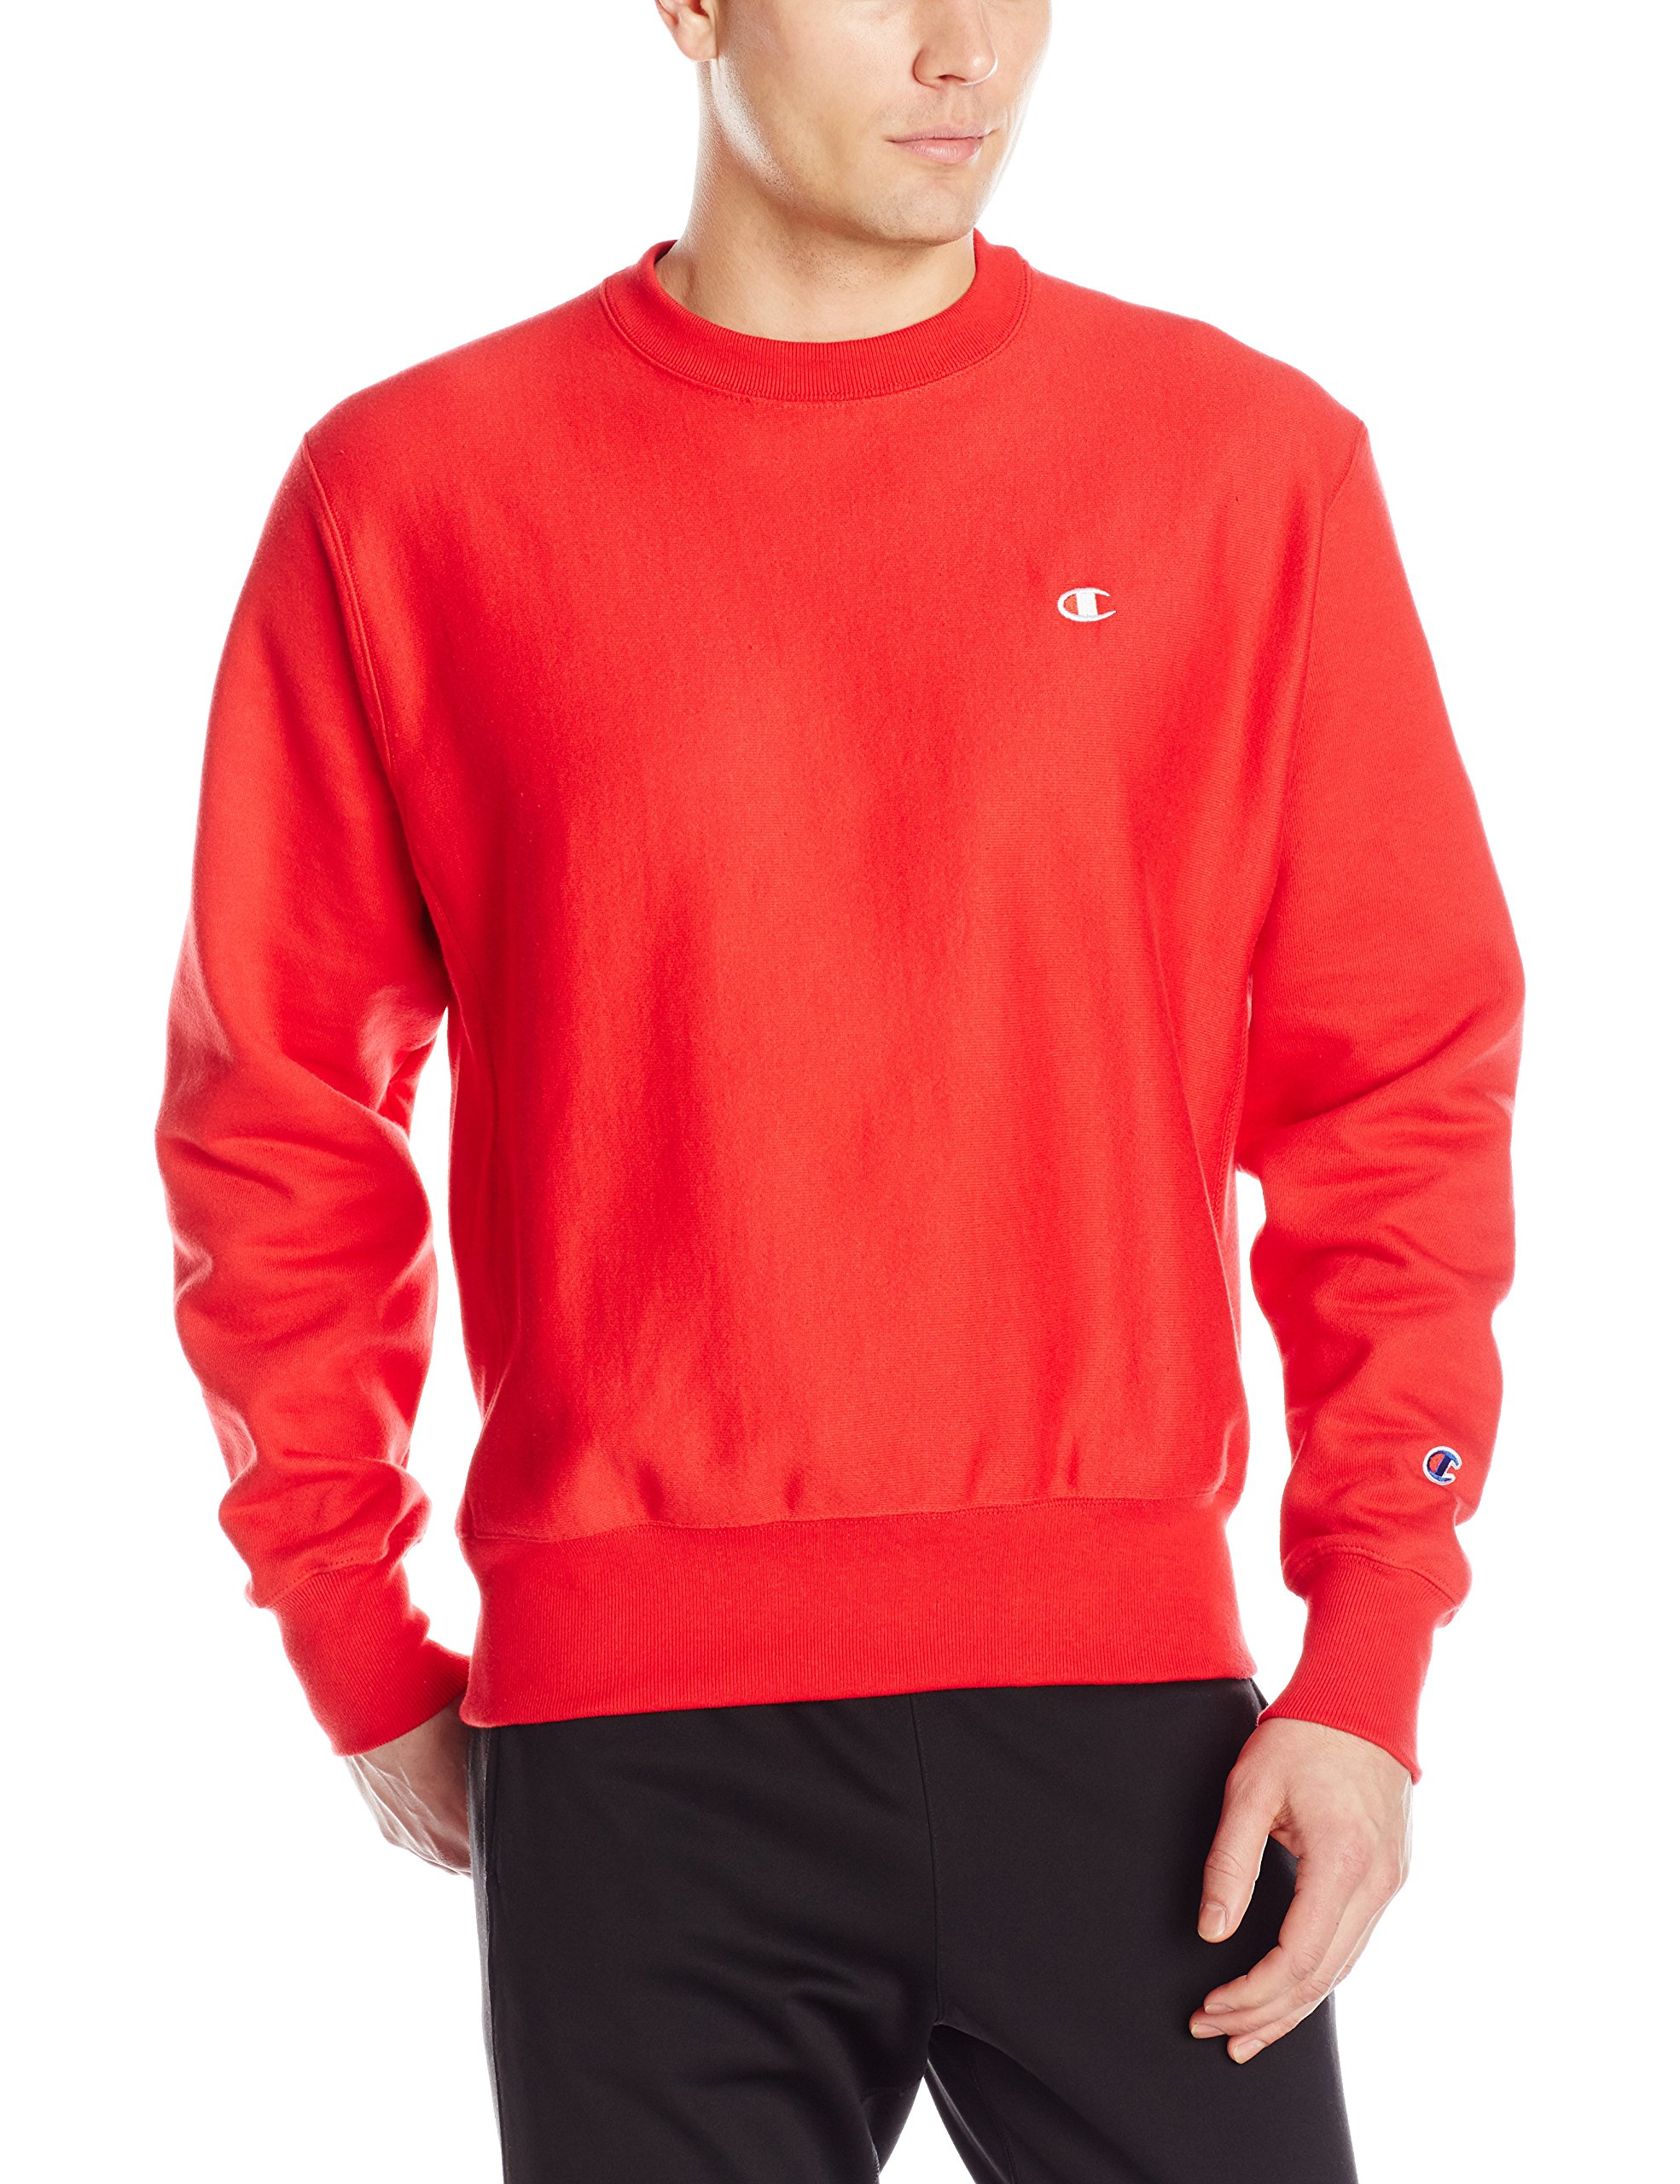 Champion LIFE Men's Reverse Weave Sweatshirt, Team Red Scarlet, Small